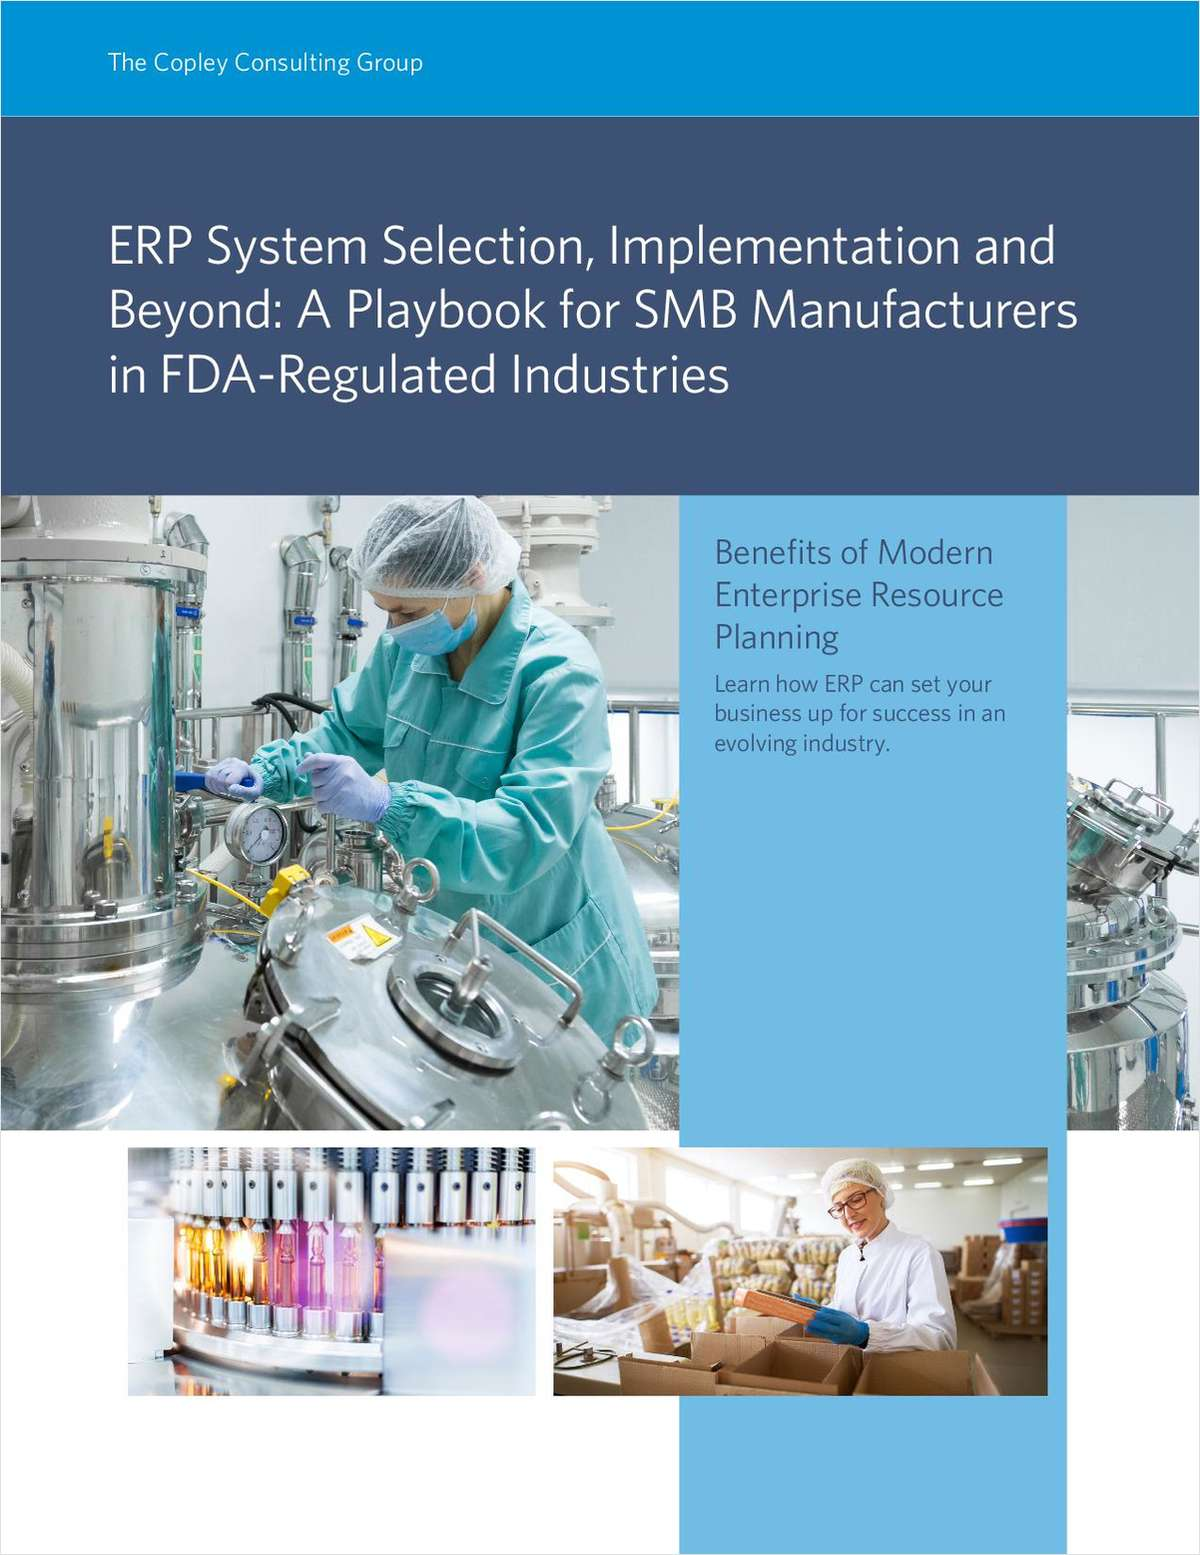 ERP & FDA Compliance: A Playbook for SMB Manufacturers in FDA-Regulated Industries